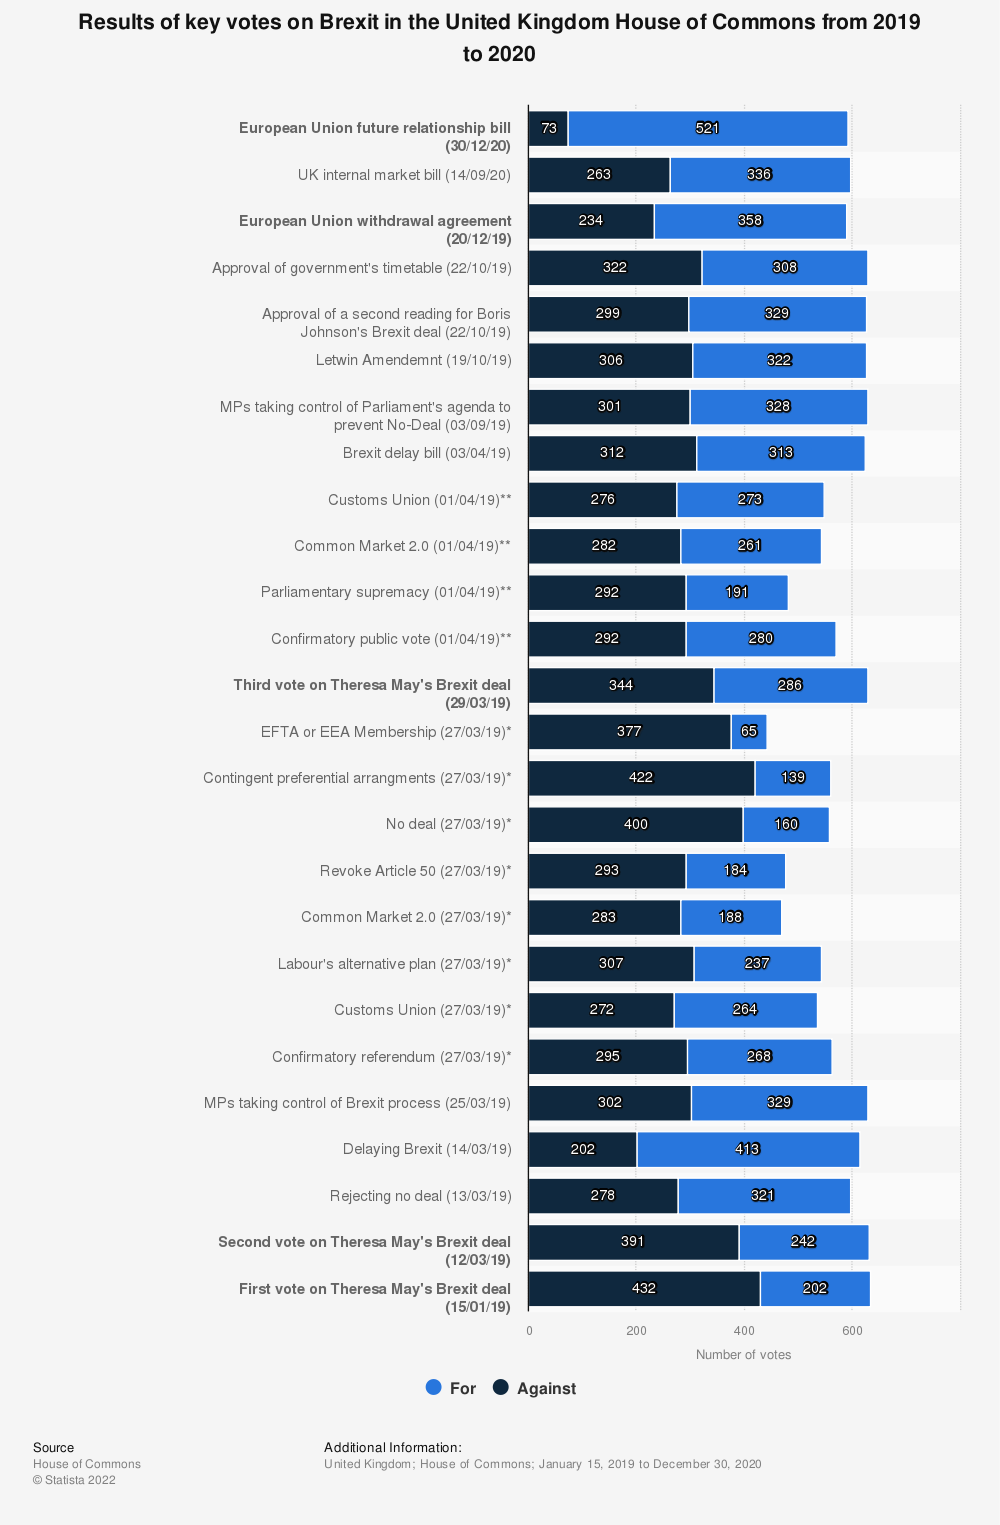 Statistic: Results of key votes on Brexit in the United Kingdom House of Commons in 2019/20 | Statista